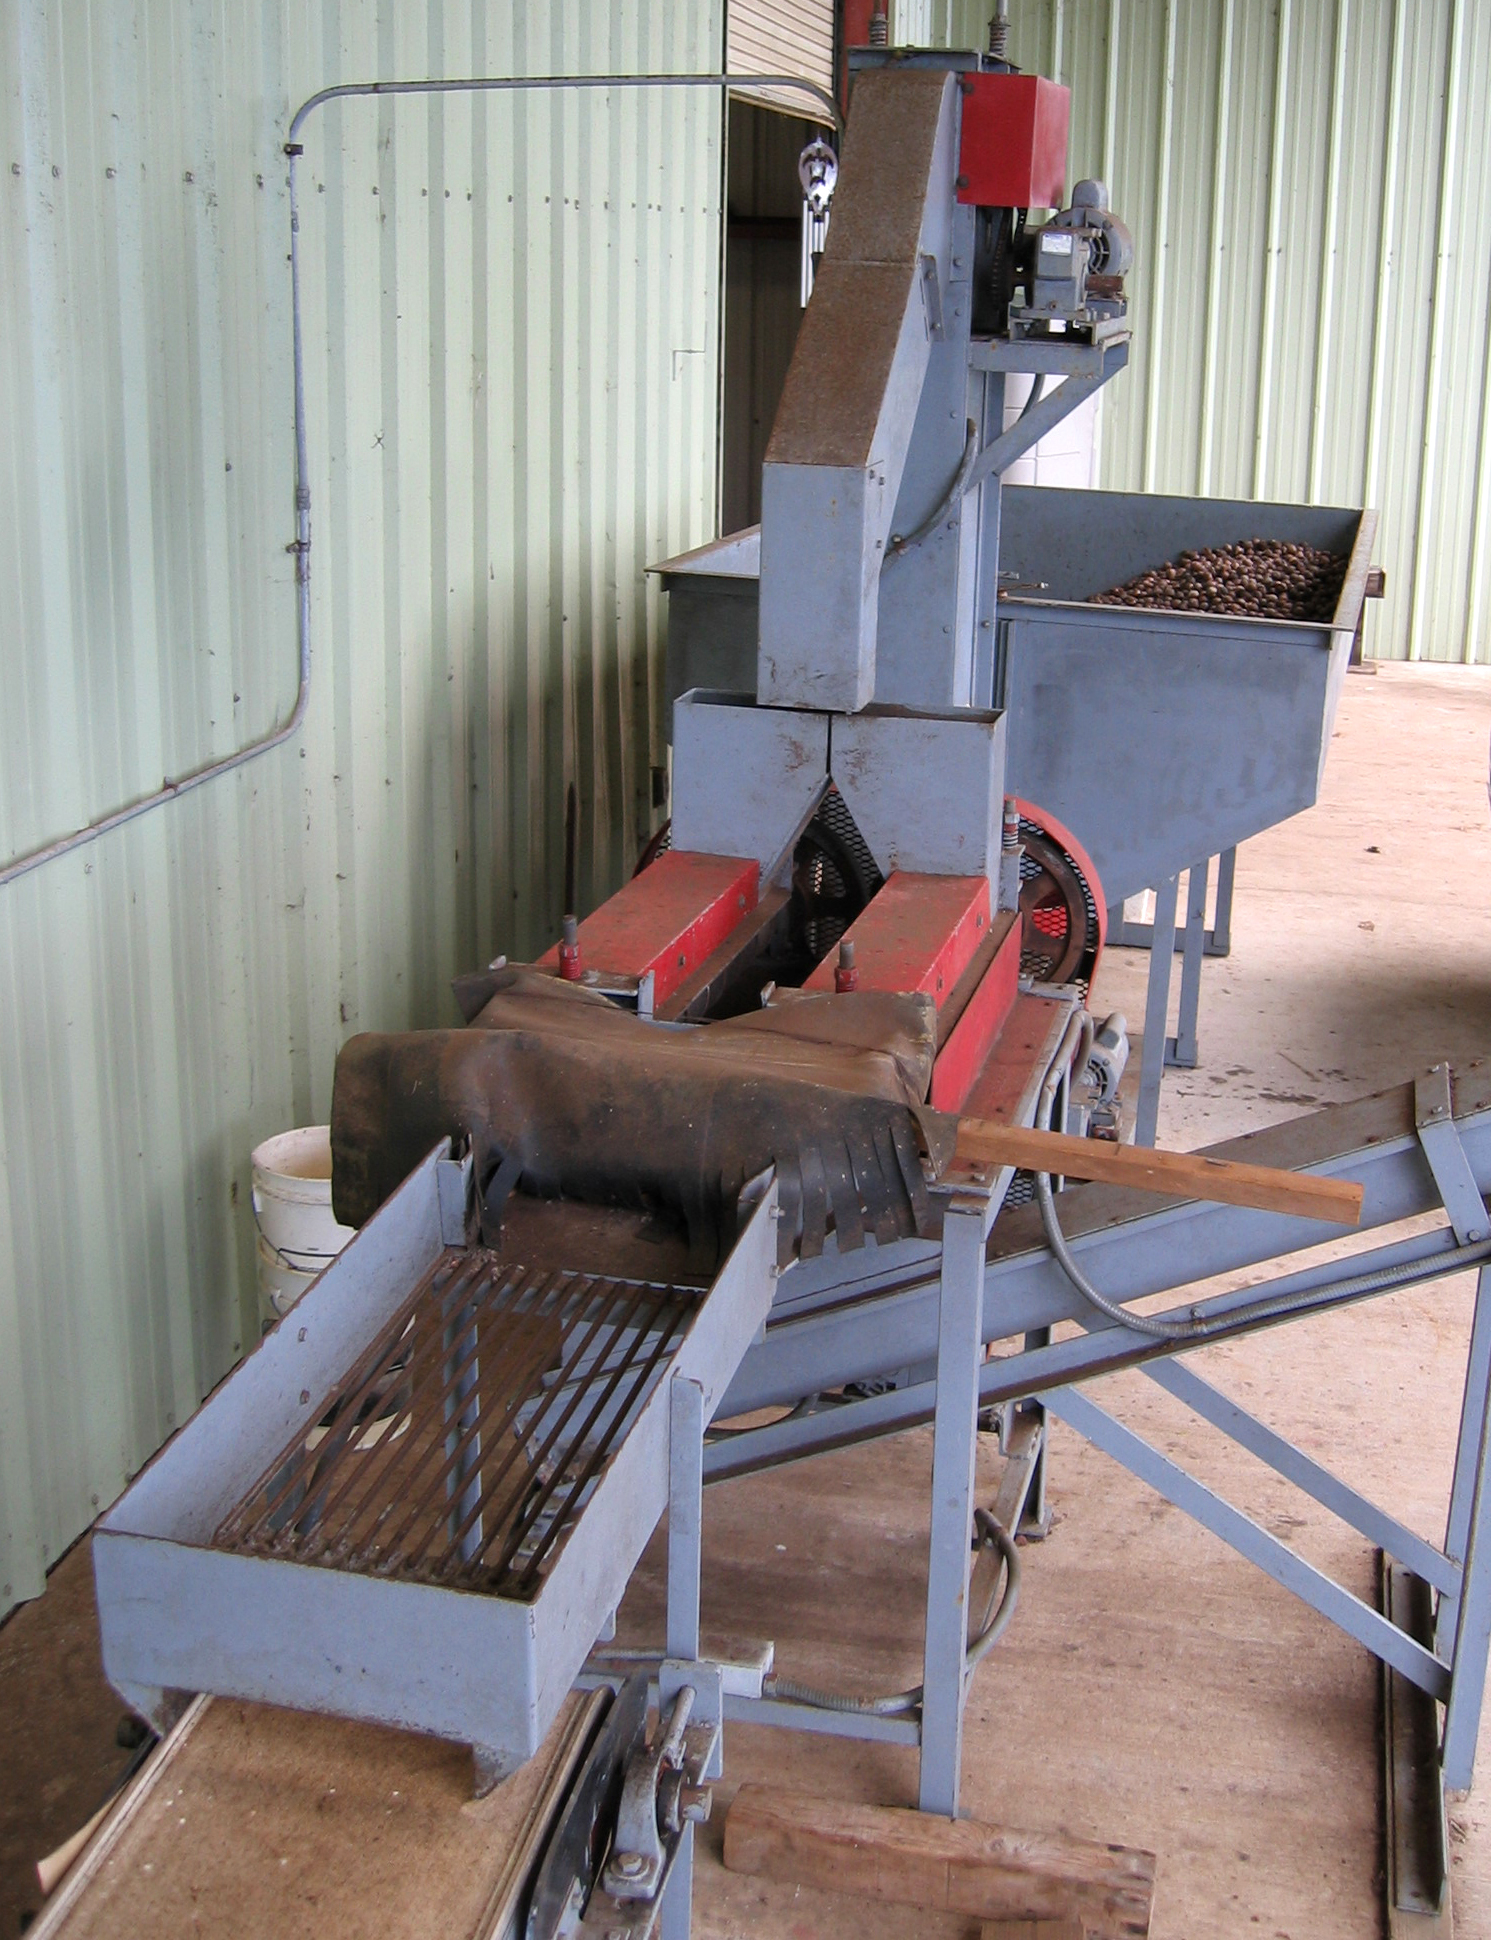 Macadamia integrifolia   - Machinery for removing the husk